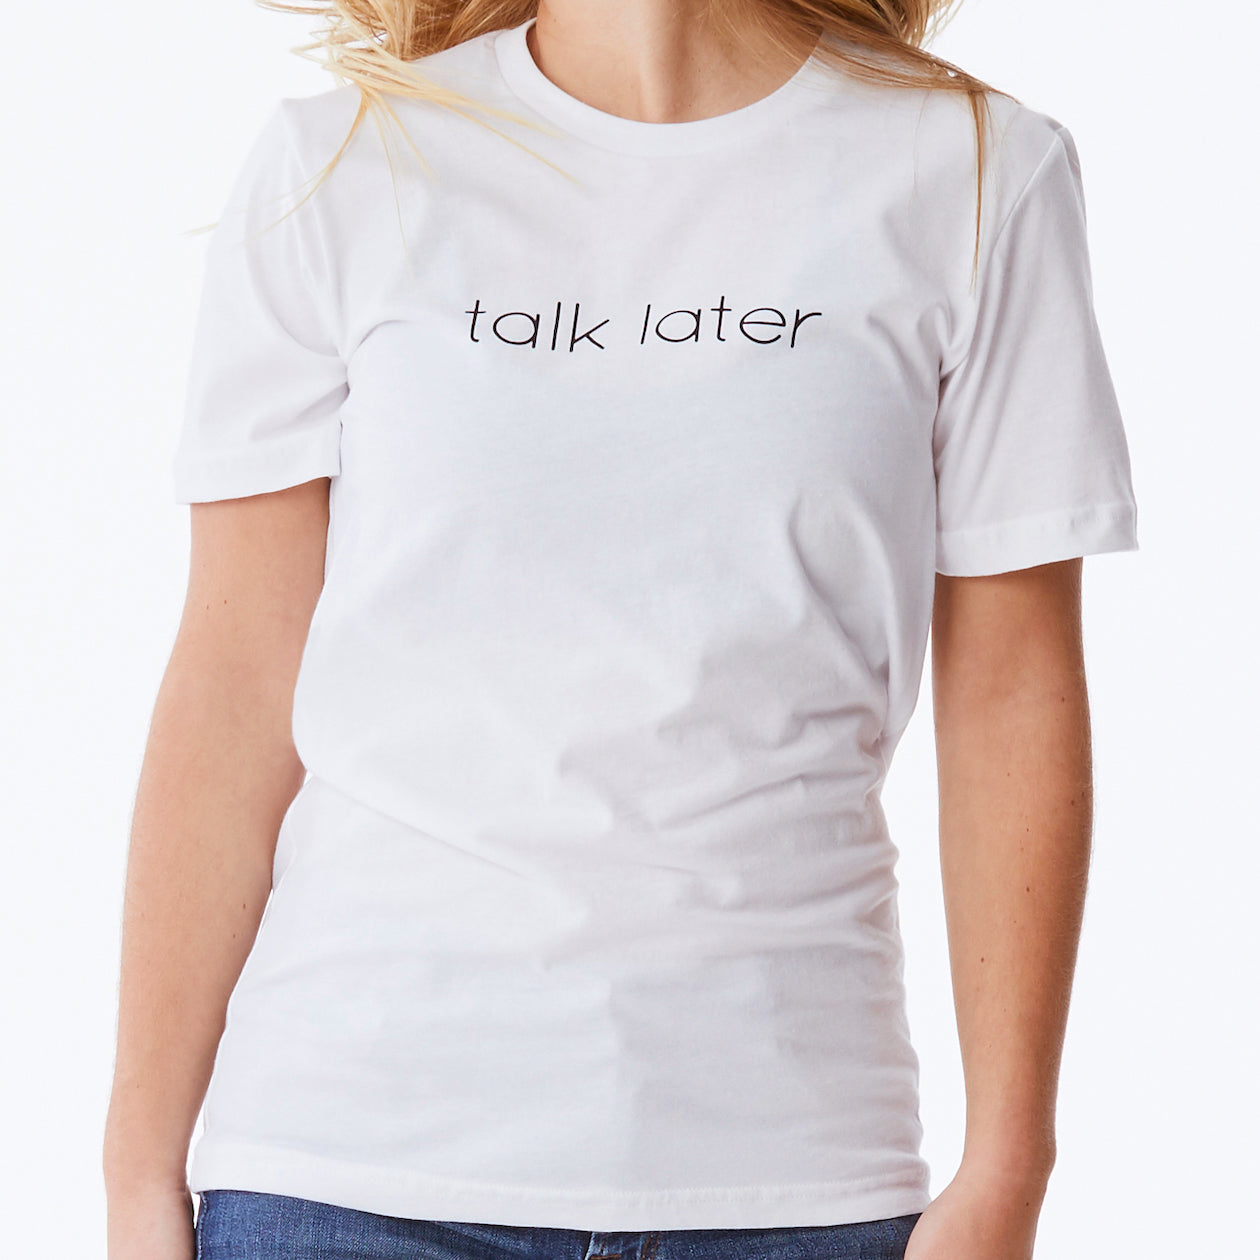 c'est beau1872 – Talk Later Logo Short Sleeve Tee in White